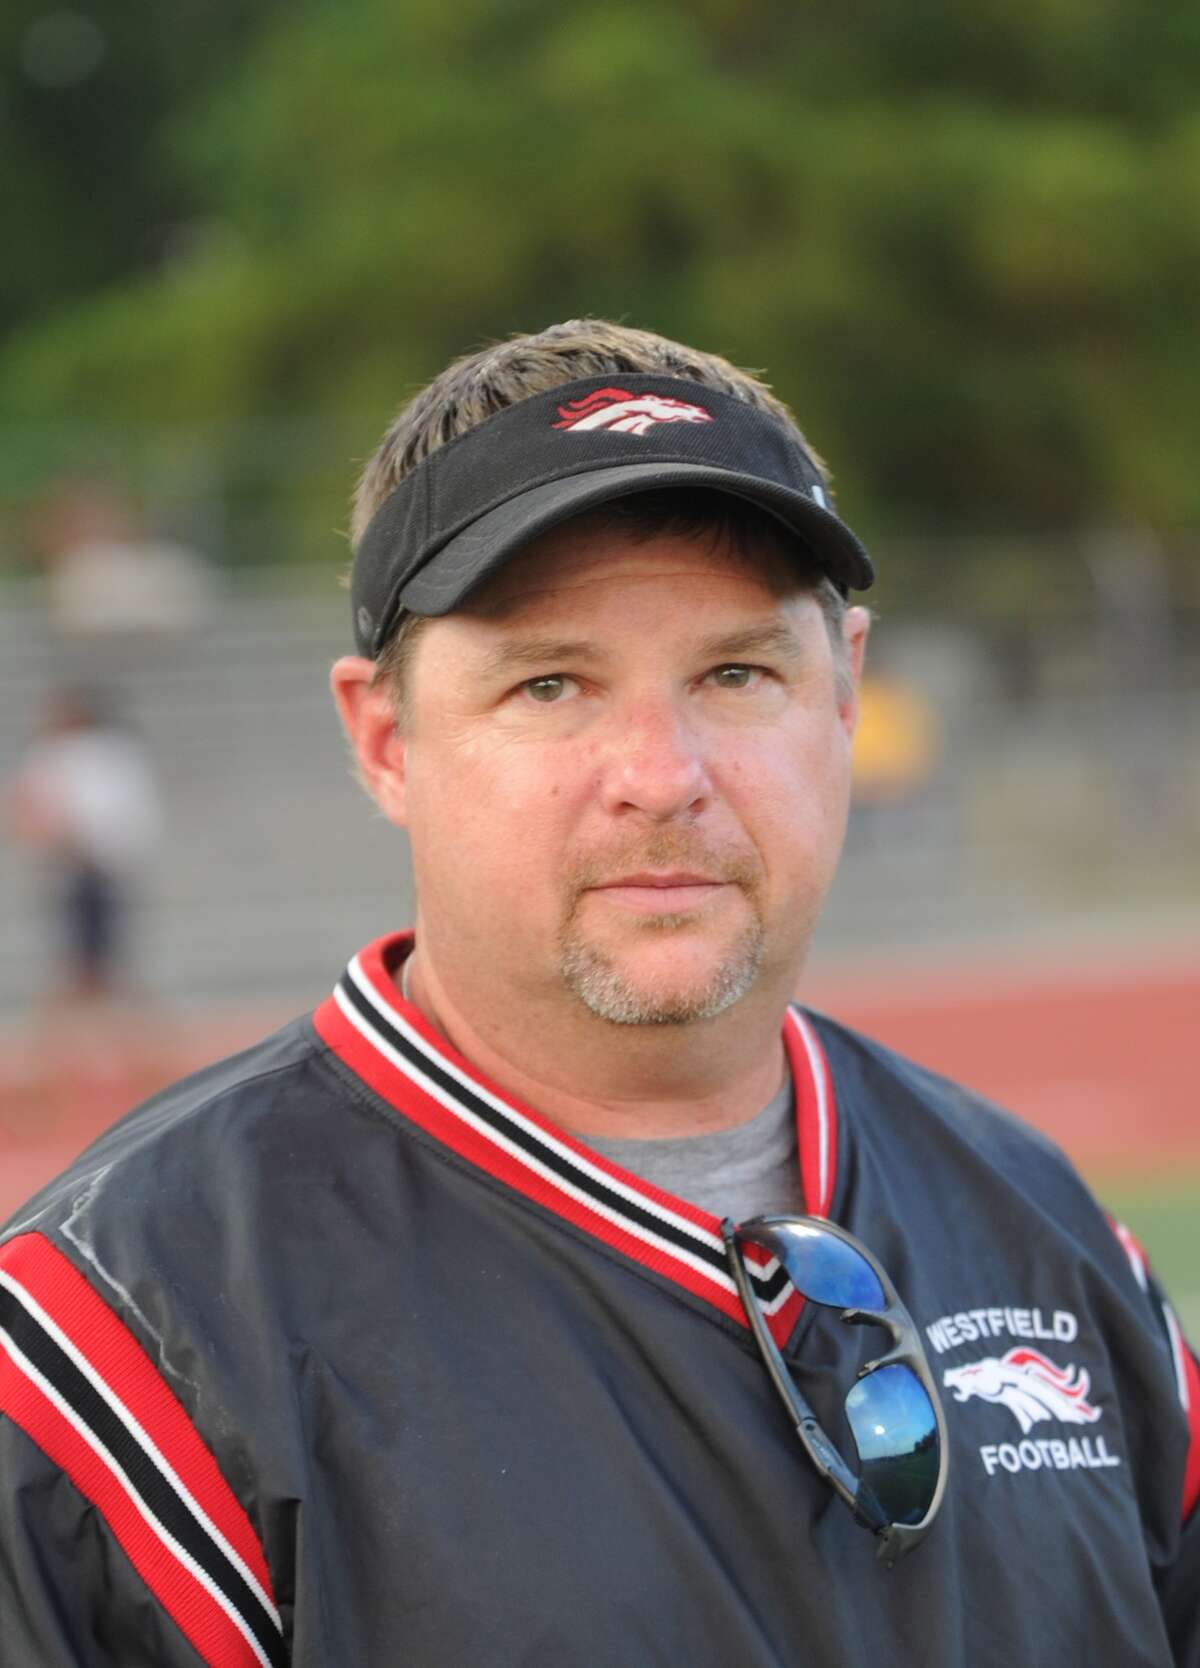 Spring Westfield football team participates in Texas UIL District 13-5A. Varsity football coach for Westfield, Corby Meekins.